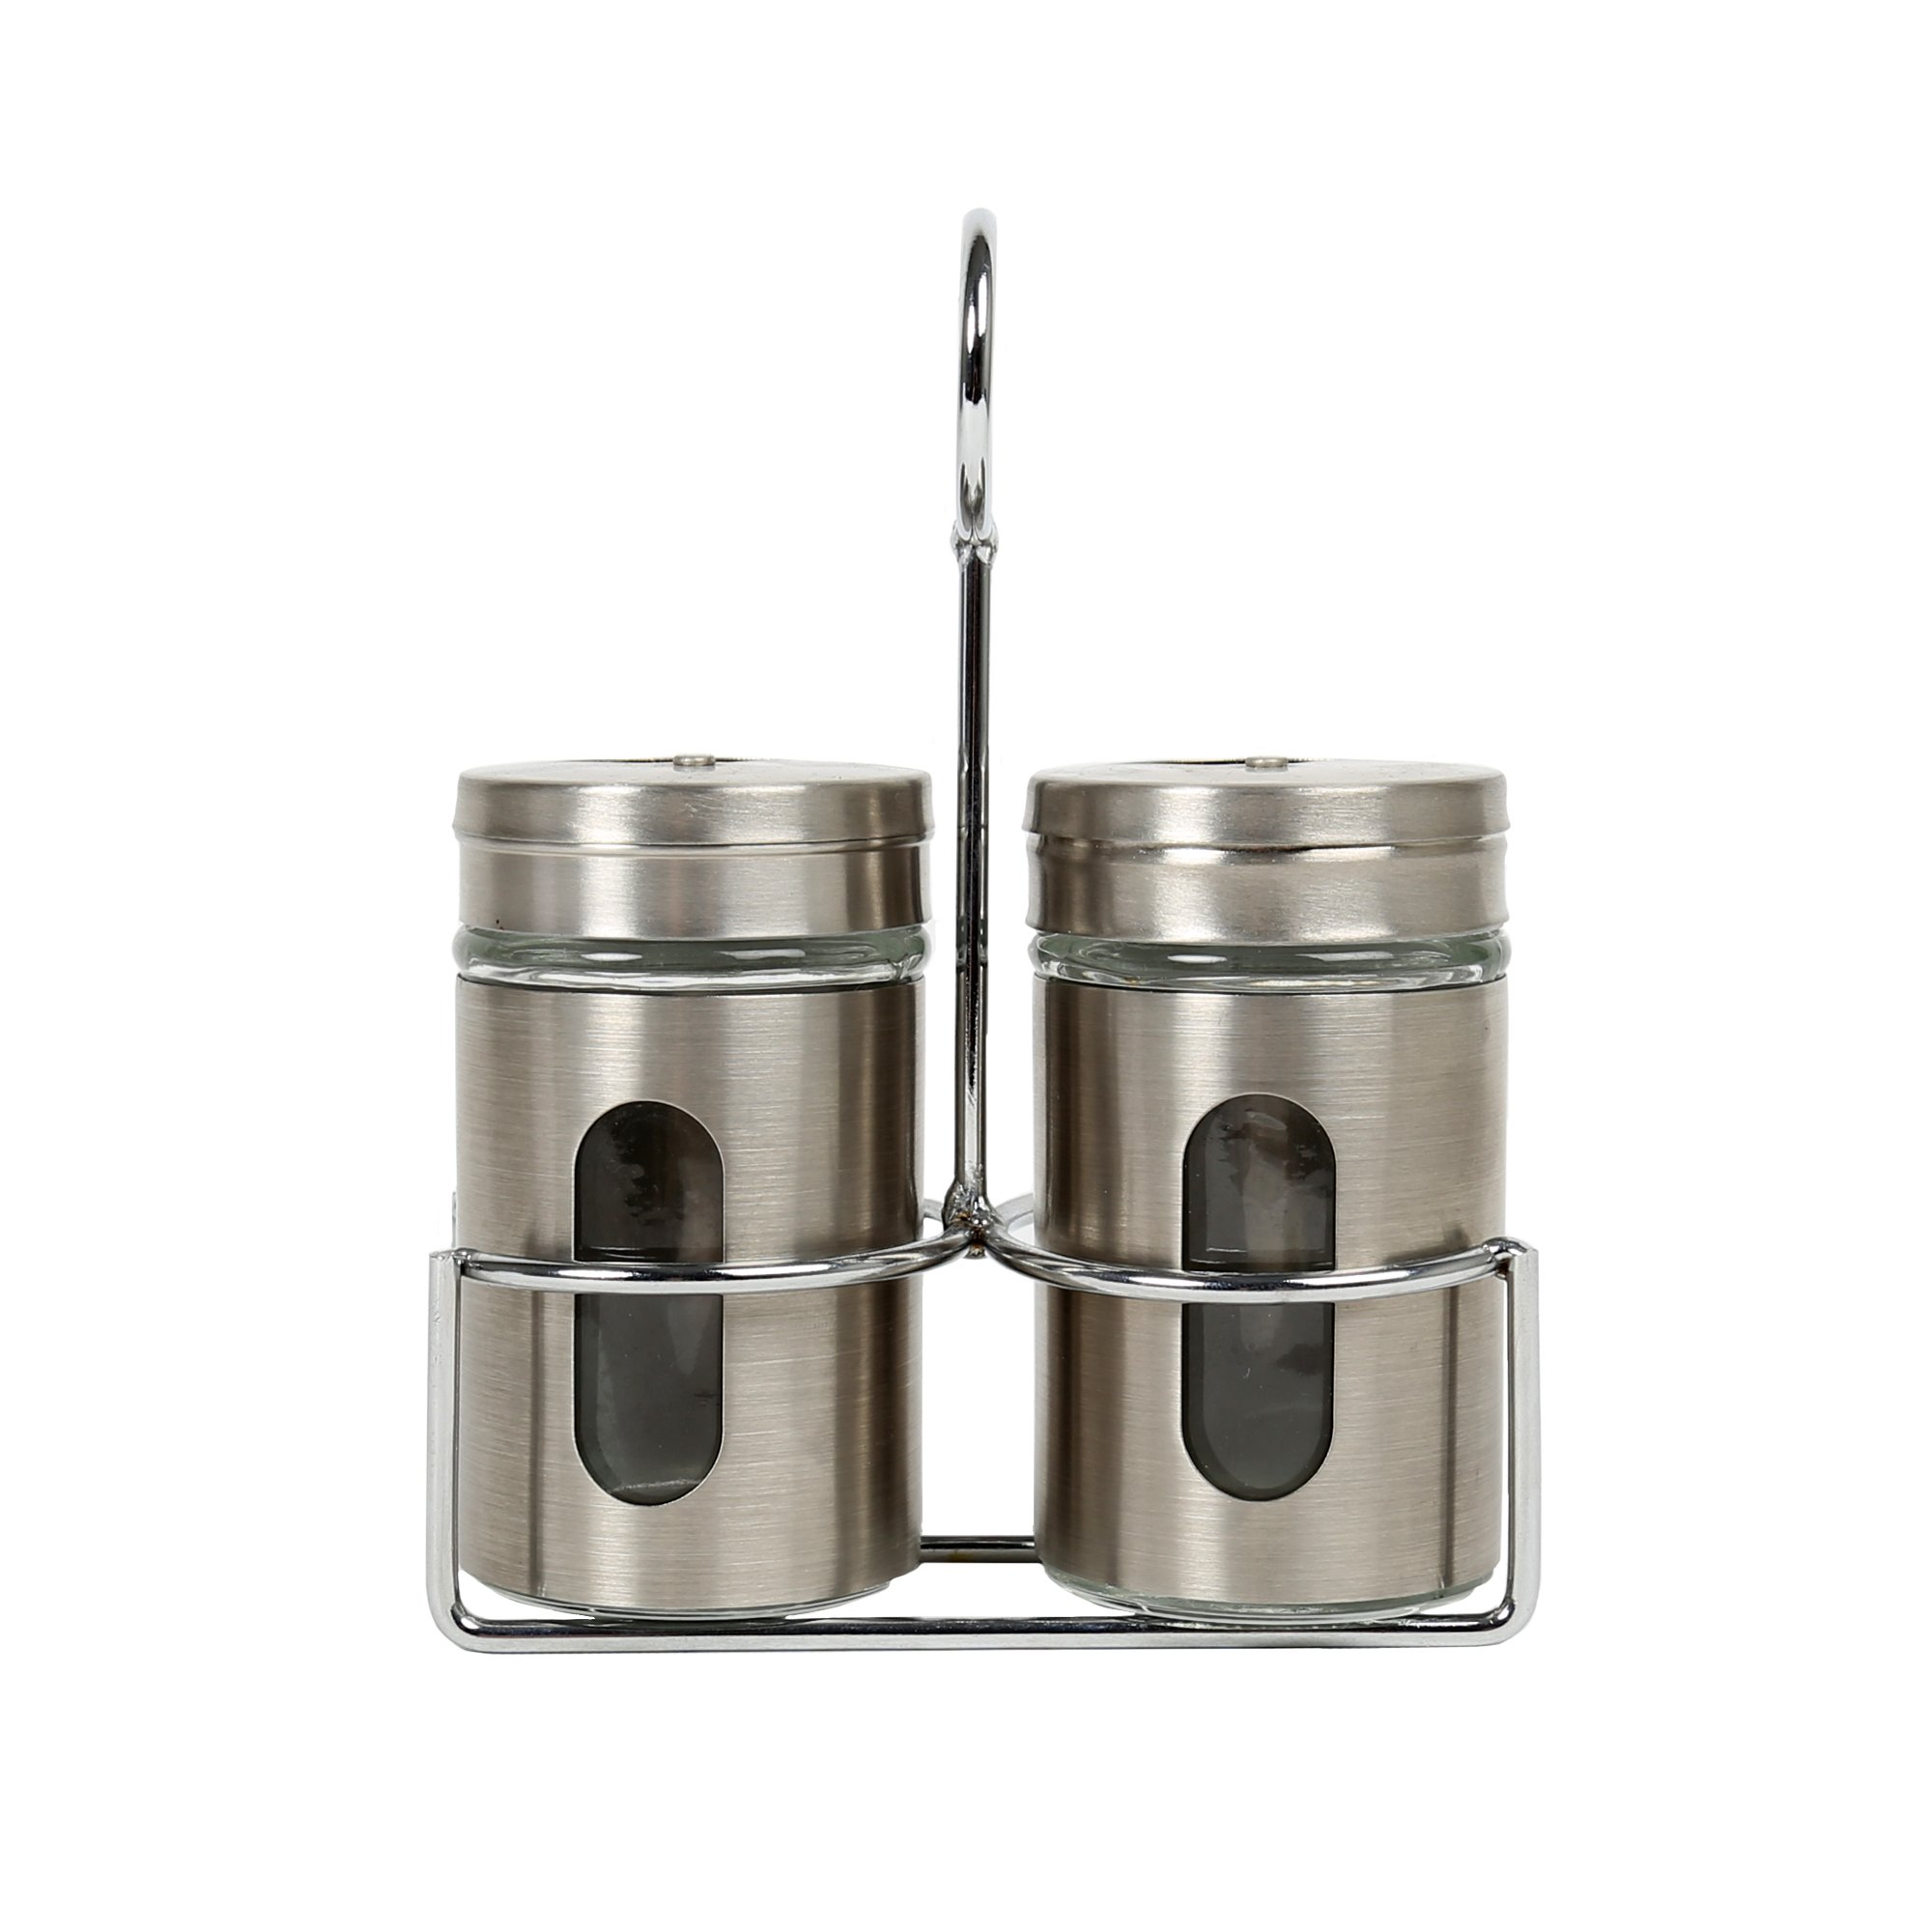 Luciano, Stainless Steel Salt and Pepper Set, 5.75 inches, Silver